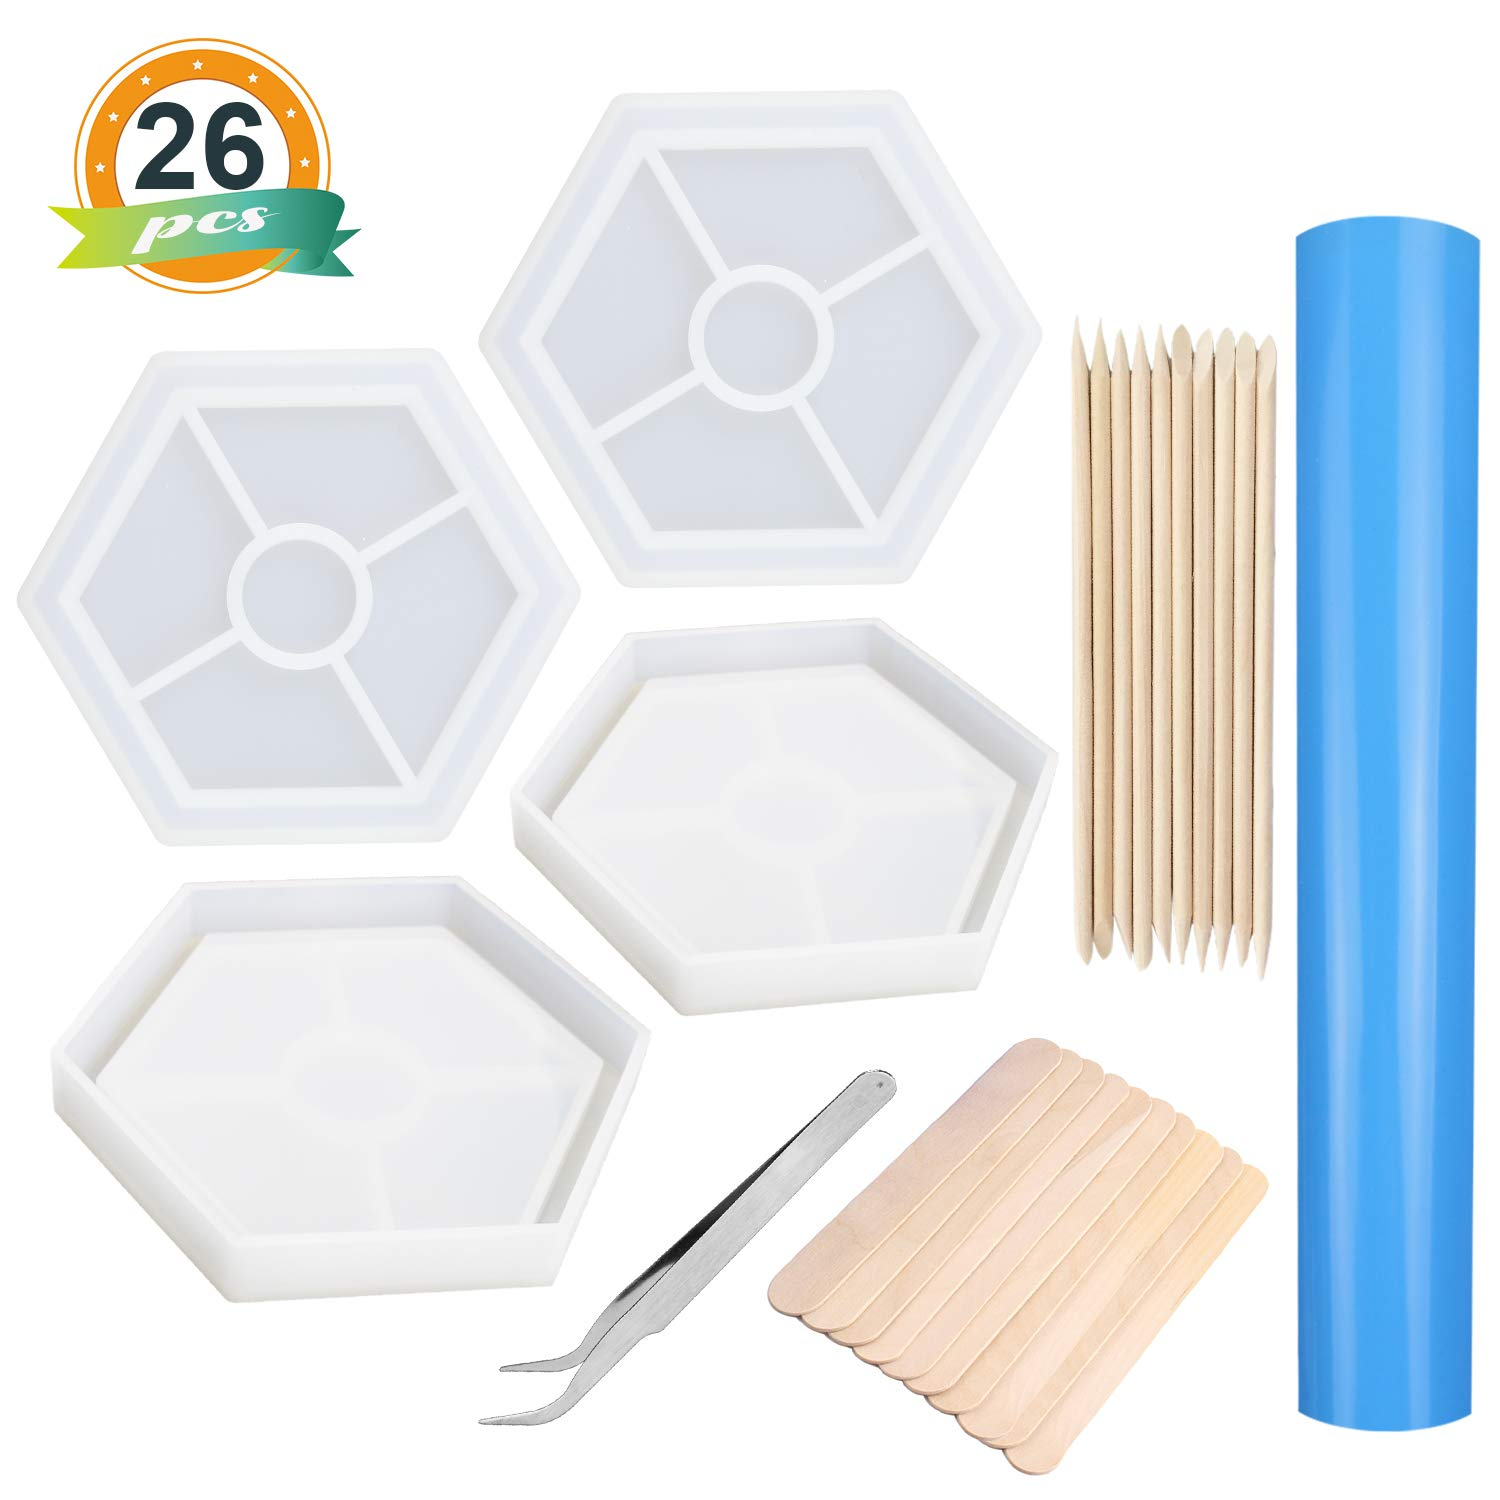 LET'S RESIN Silicone Coaster Molds Epoxy Resin Molds, 4Pcs Shiny Resin Casting Molds for Coasters, Candle Holders, Flower Pot Holders, Bowl Mat etc, Including Round, Square, Hexagon, Heart Shape Mold